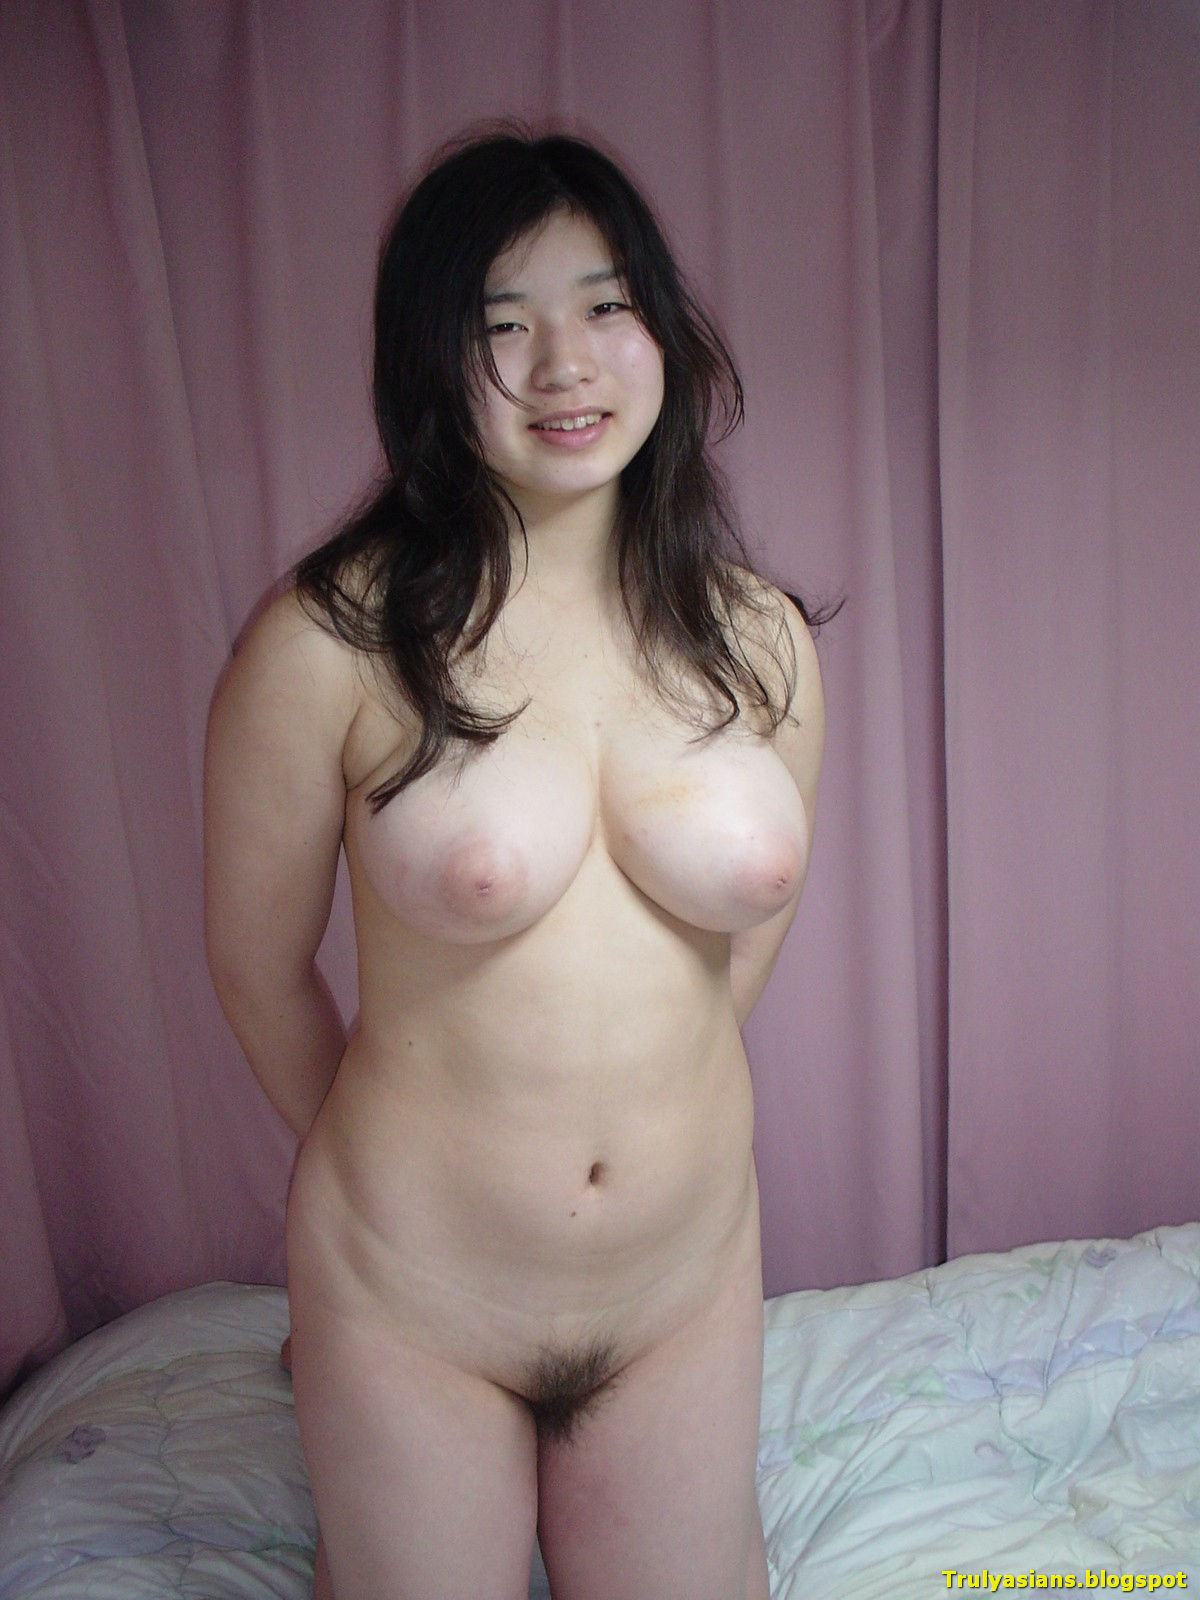 trulyasians.blogspot+-+Busty+Amateur+Girlfriend+Giving+Blowjob+001.jpg